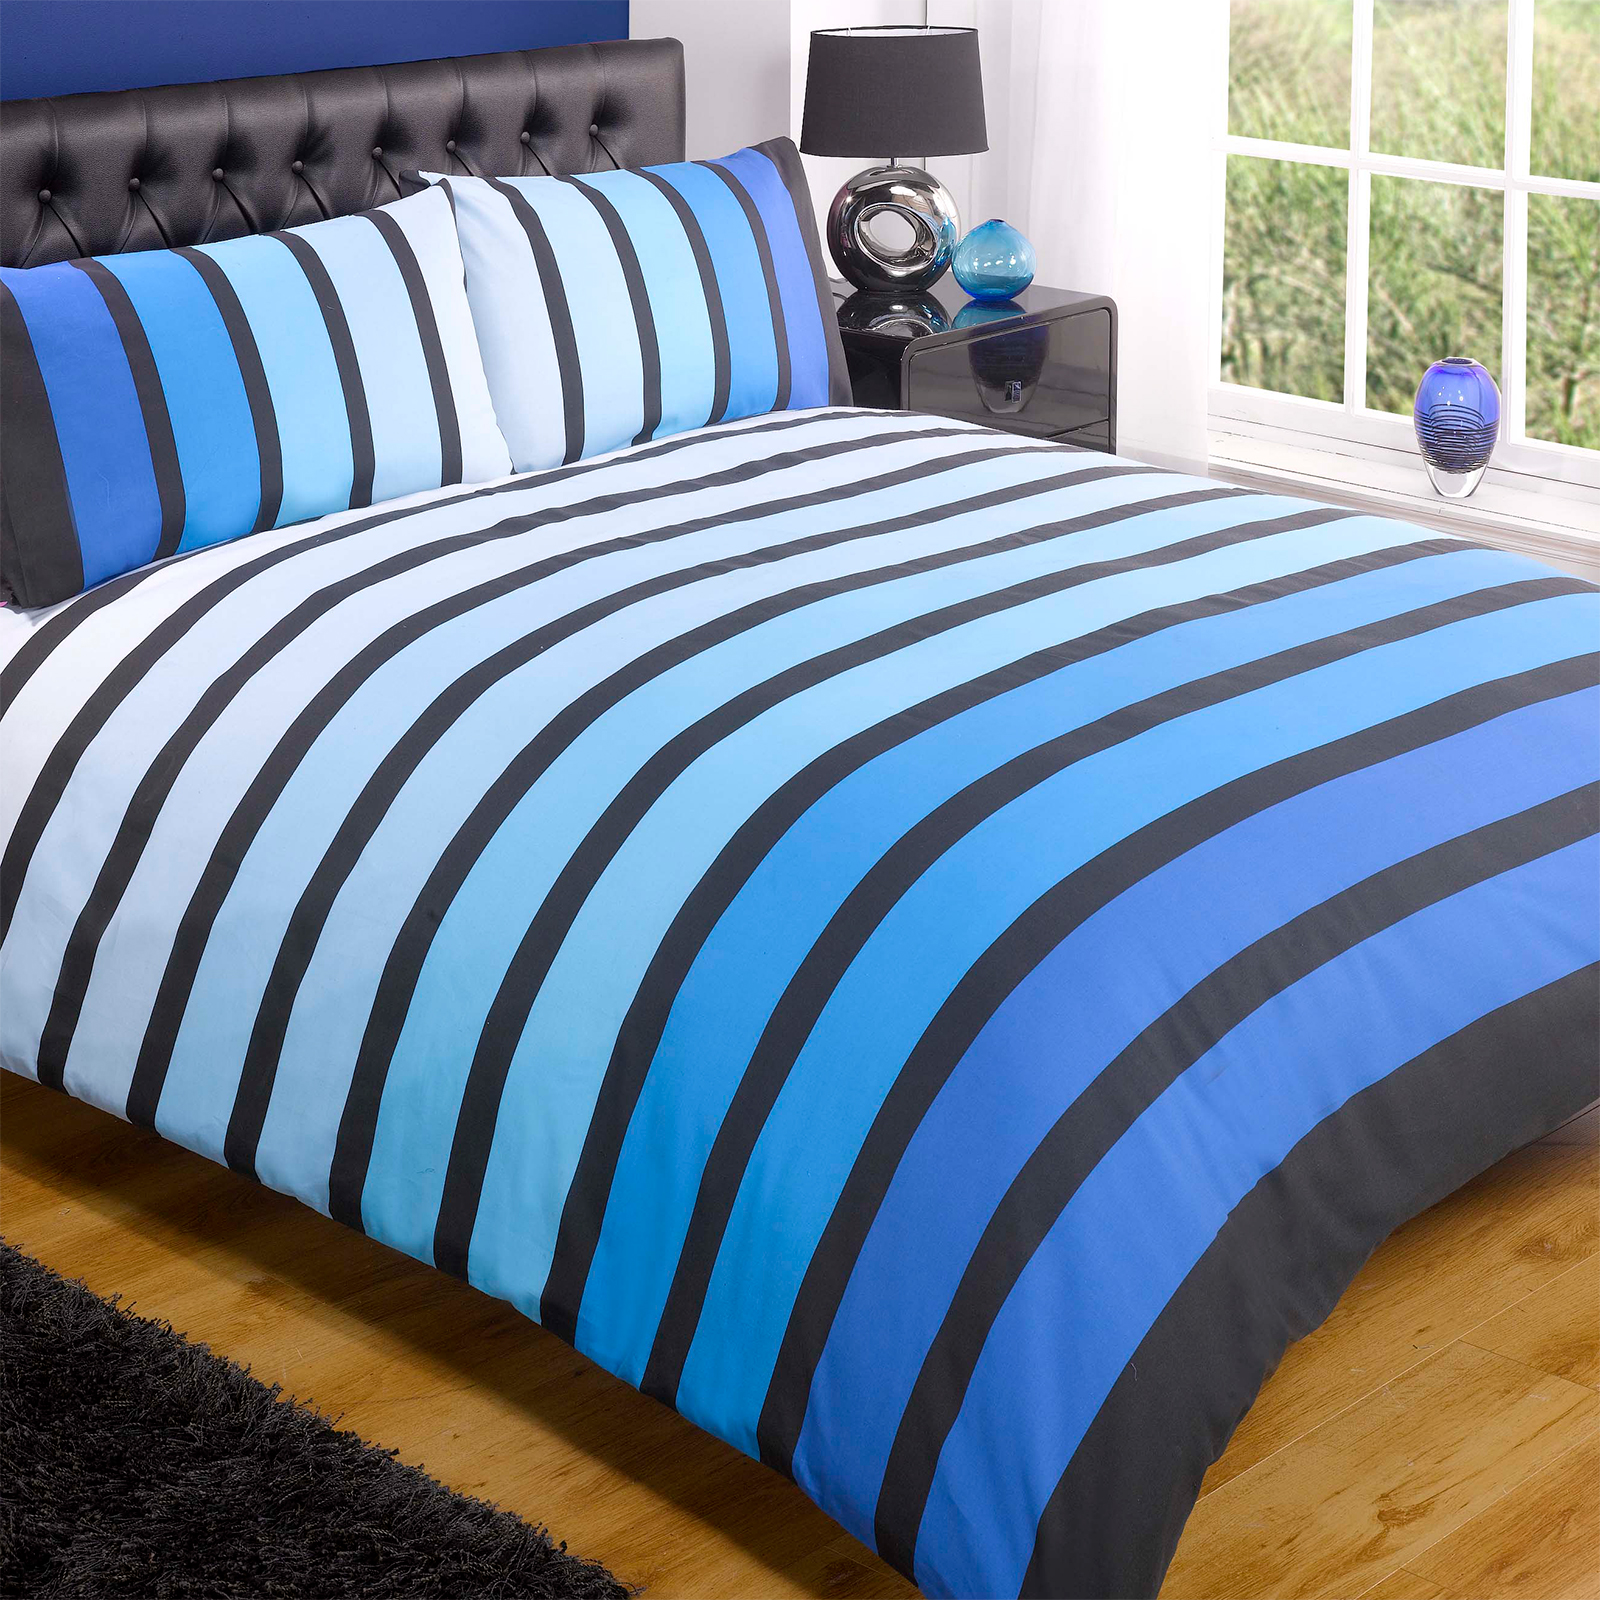 striped poly cotton duvet cover modern quilt cover bedding bed set. Black Bedroom Furniture Sets. Home Design Ideas